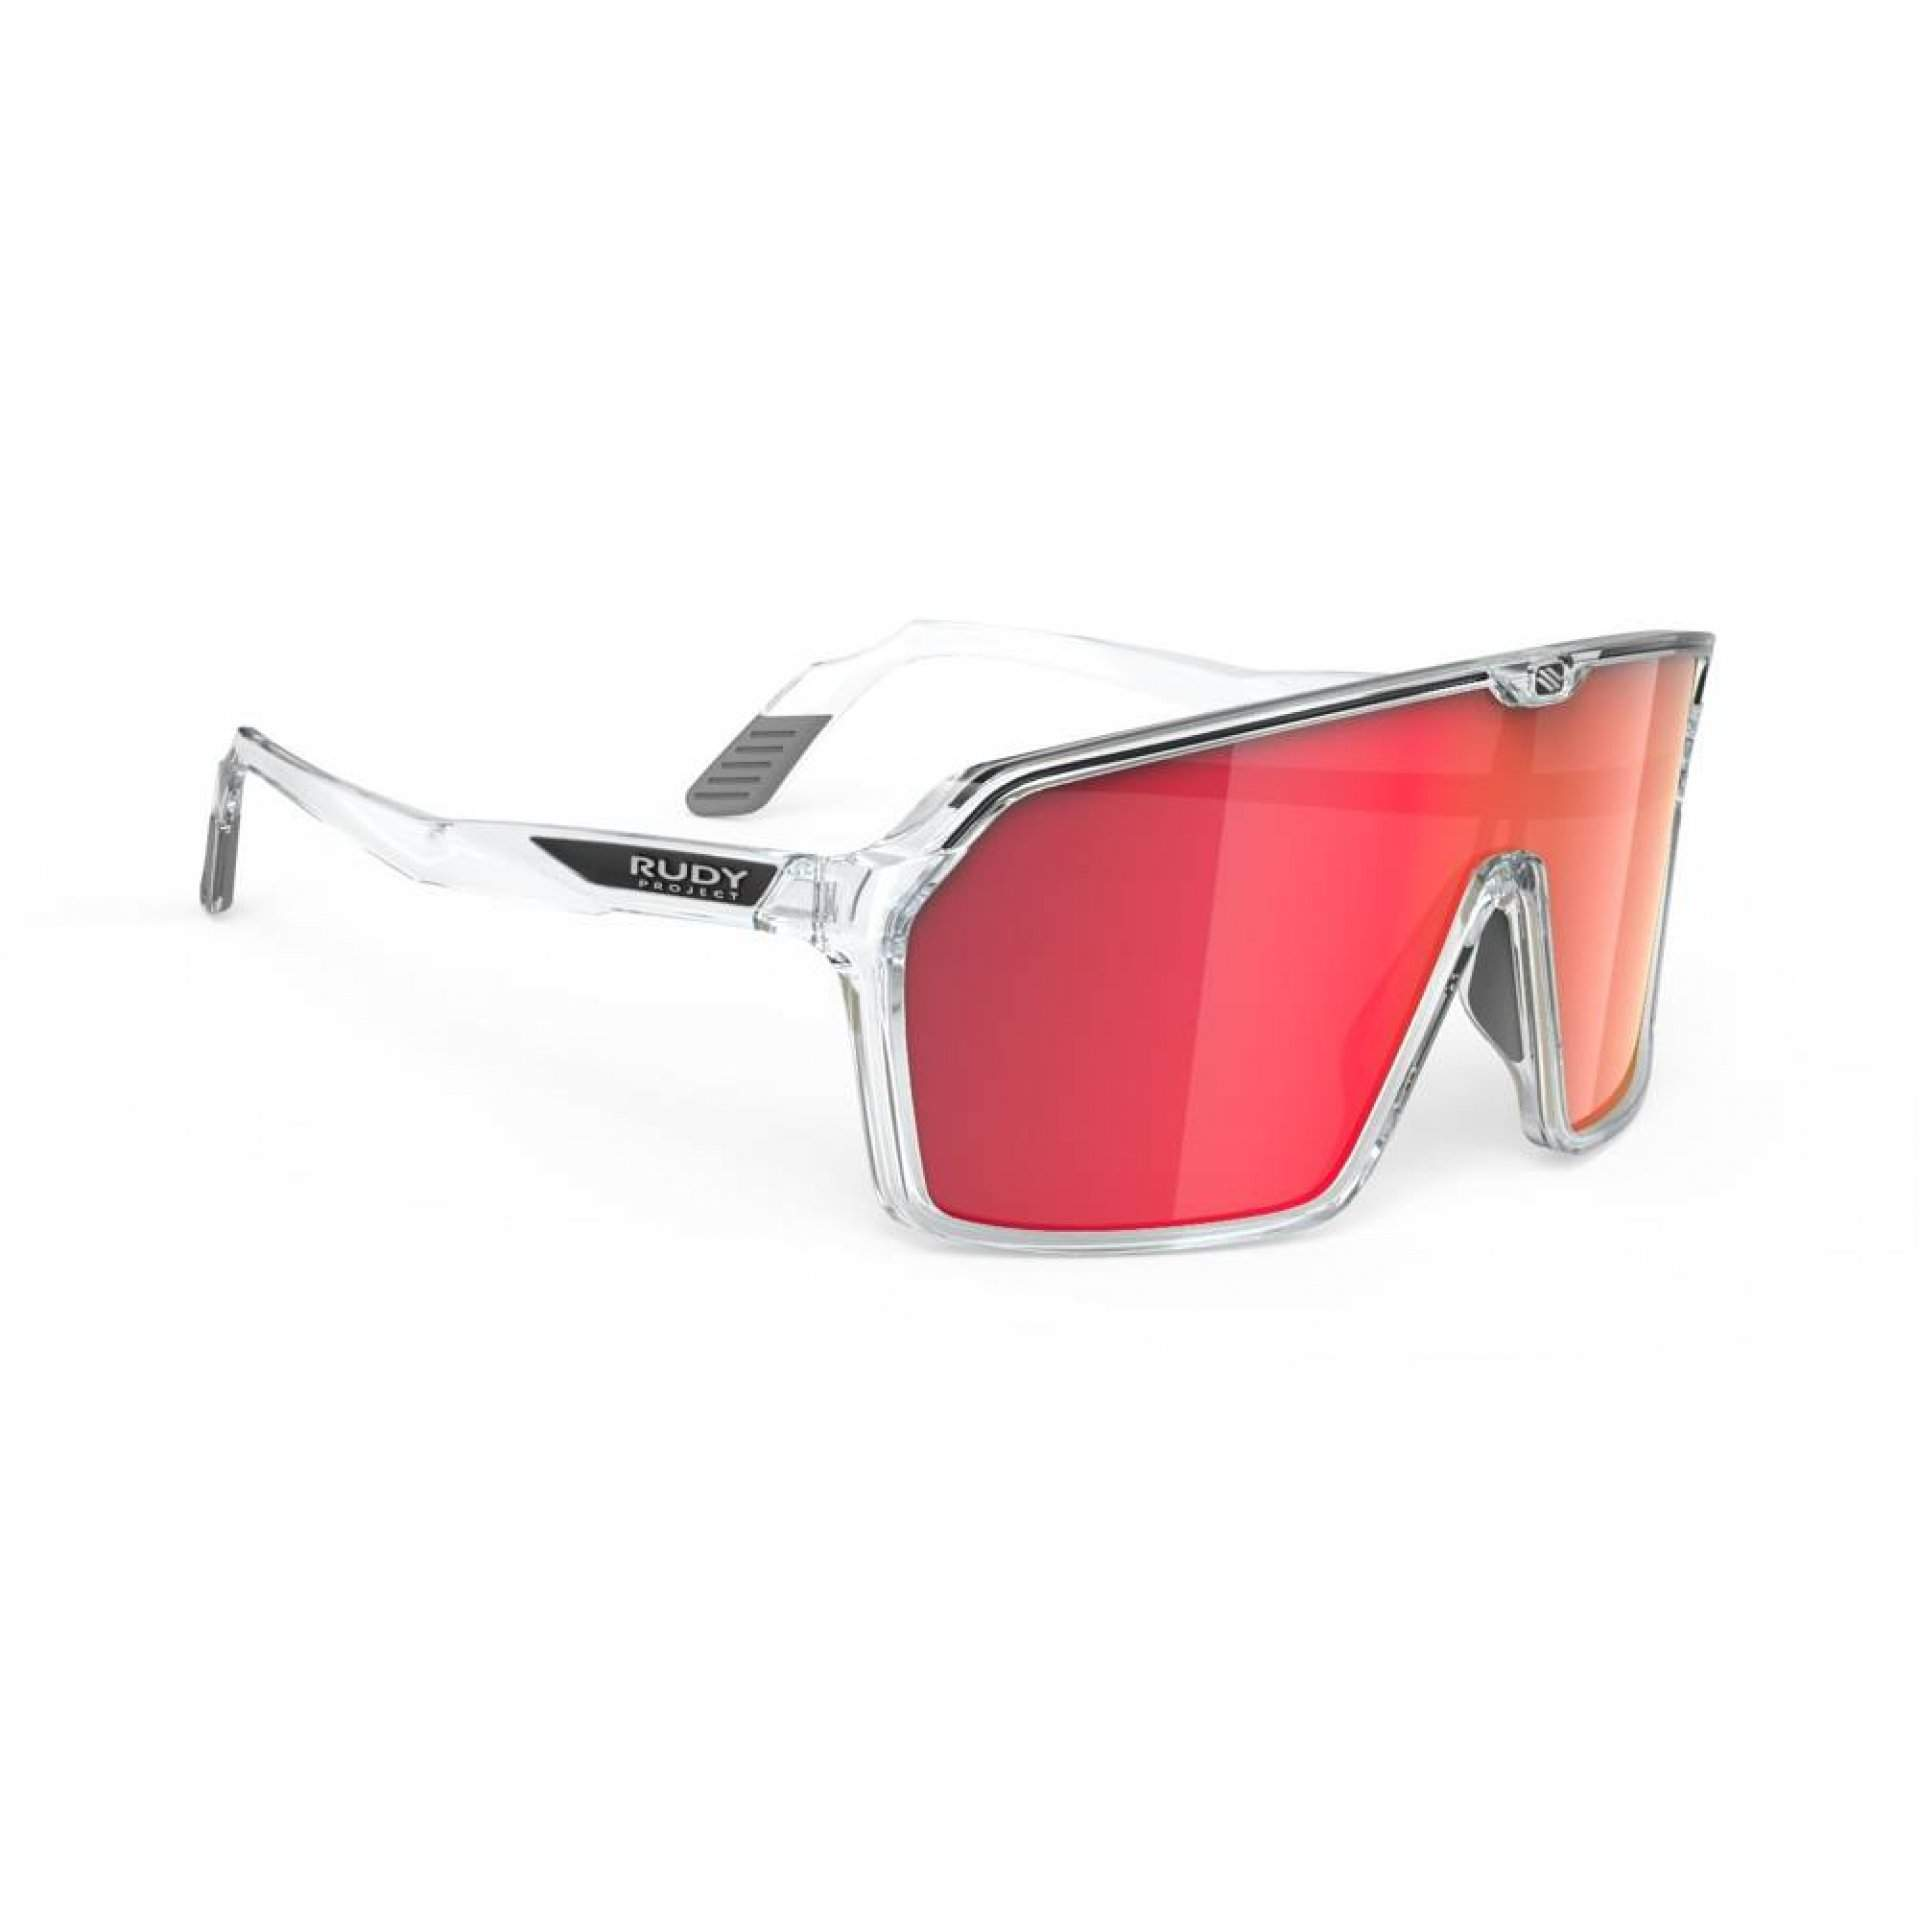 OKULARY RUDY PROJECT SPINSHIELD CRYSTAL GLOSS|MULTILASER RED 1